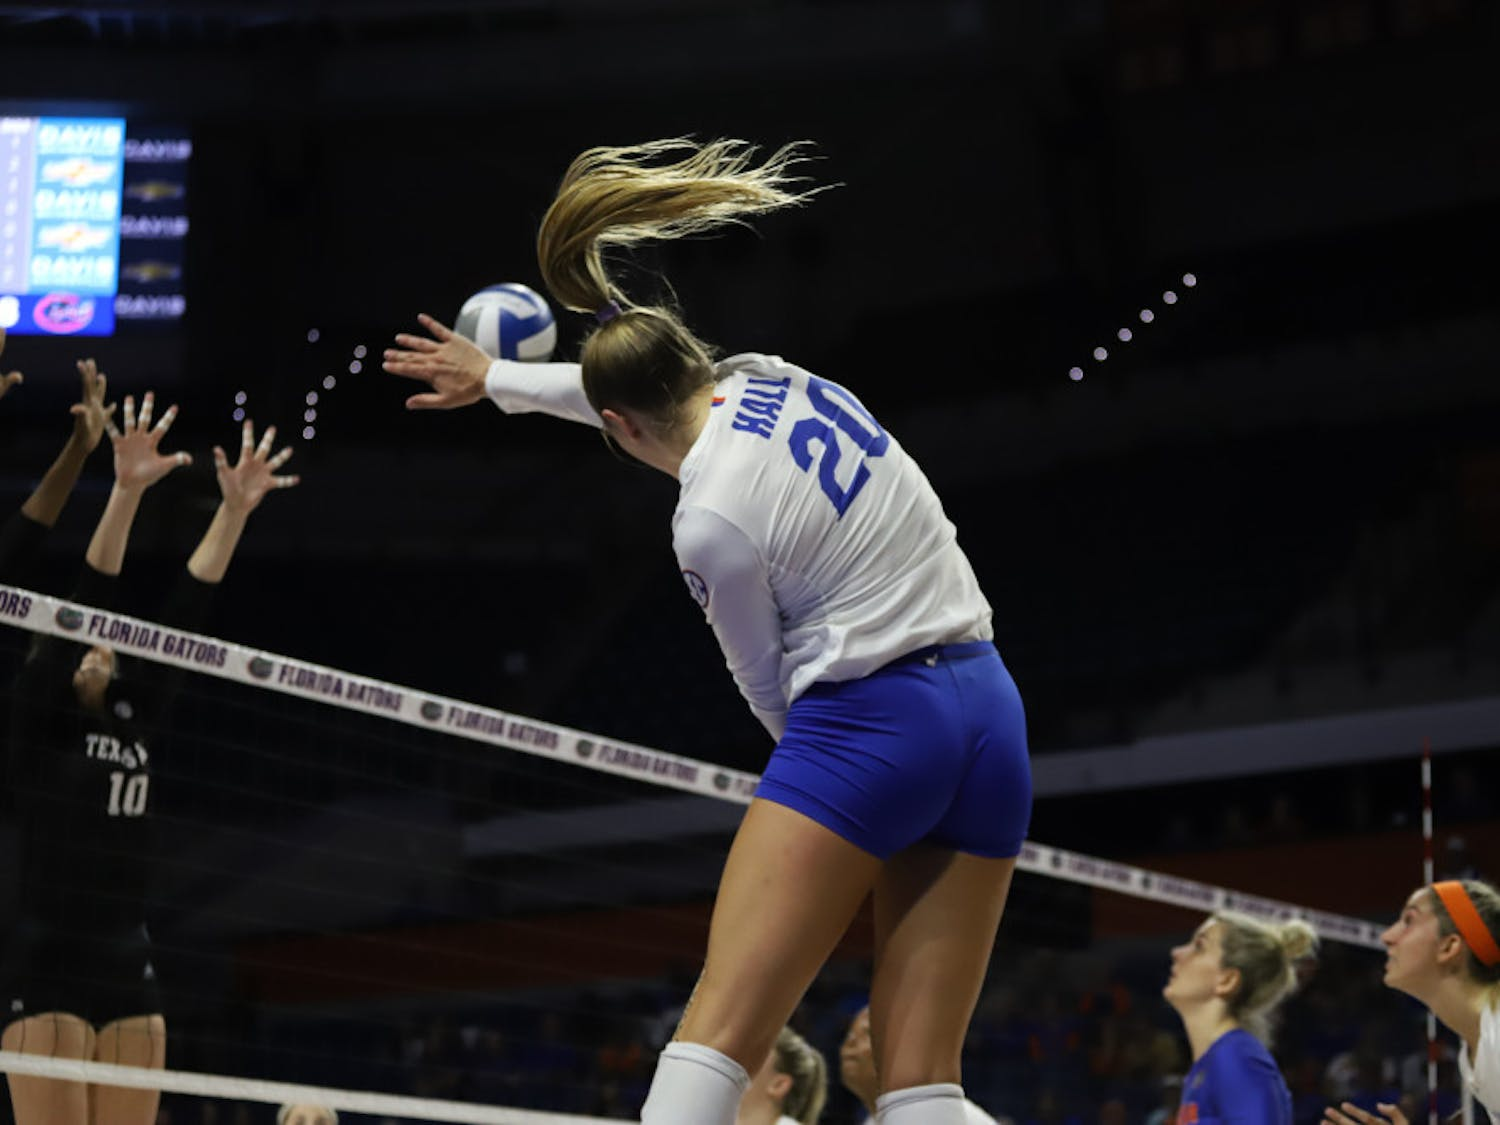 Thayer Hall spikes the ball at Florida's game against Kentucky last season. On Friday night, Hall recorded 19 kills in the Gators' victory over Alabama.